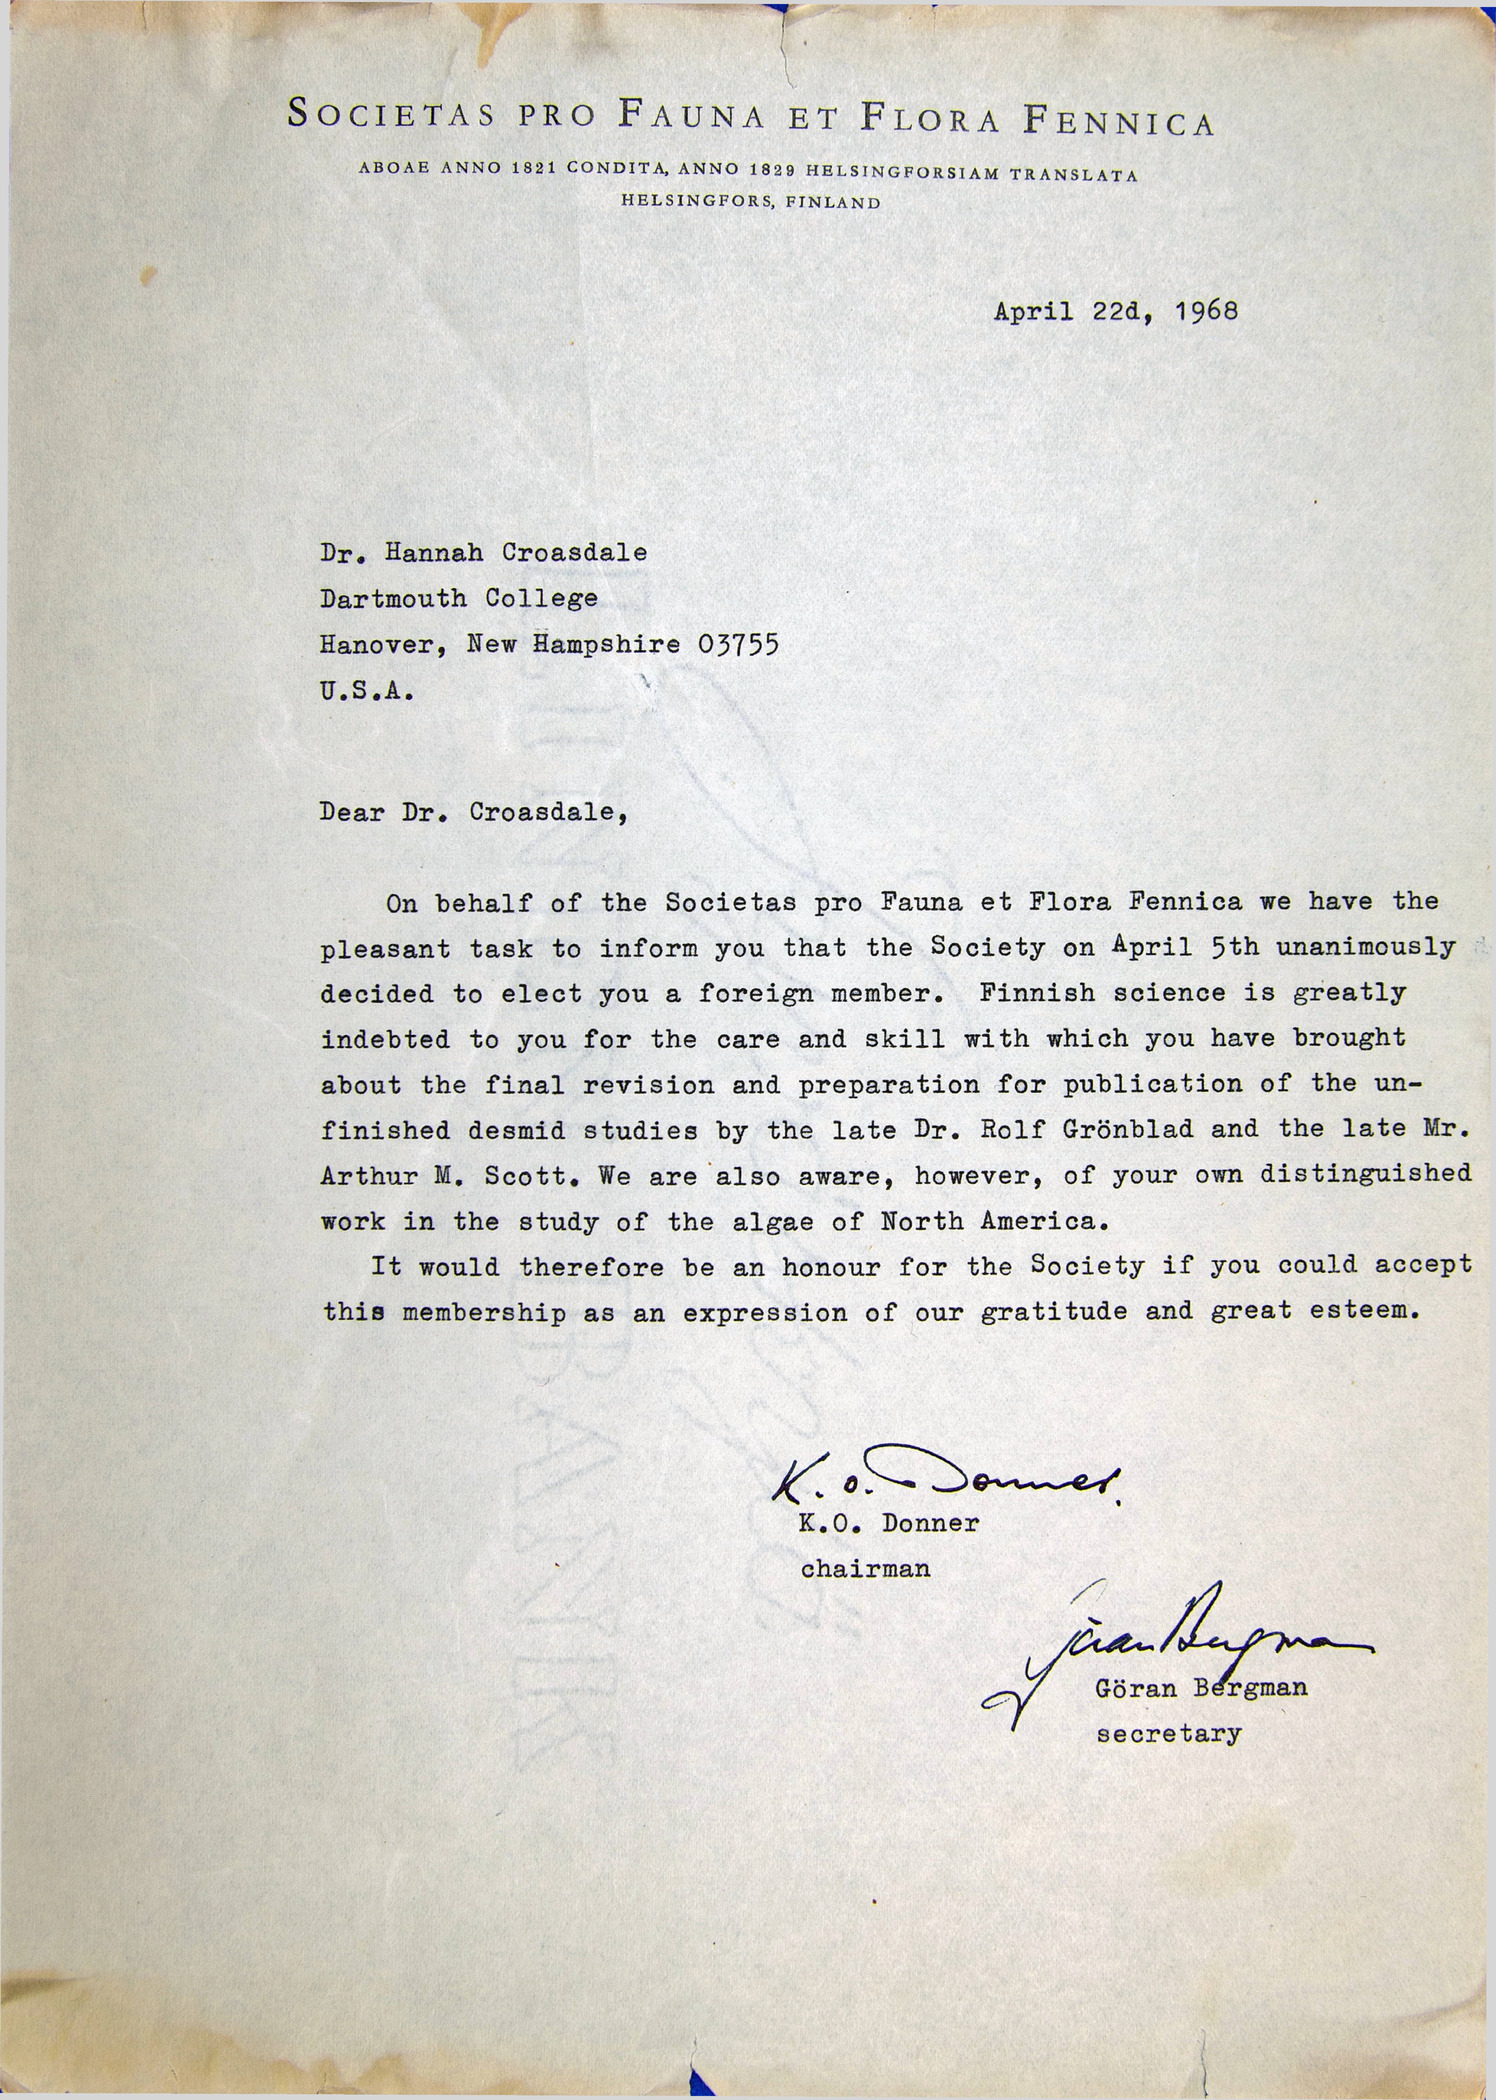 A letter from K.O. Donner and Göran Bergman of the Societas pro Fauna et Flora Fennica informing Prof. Croasdale that she has been unanimously elected a foreign member of the organization as of April 5, 1968.